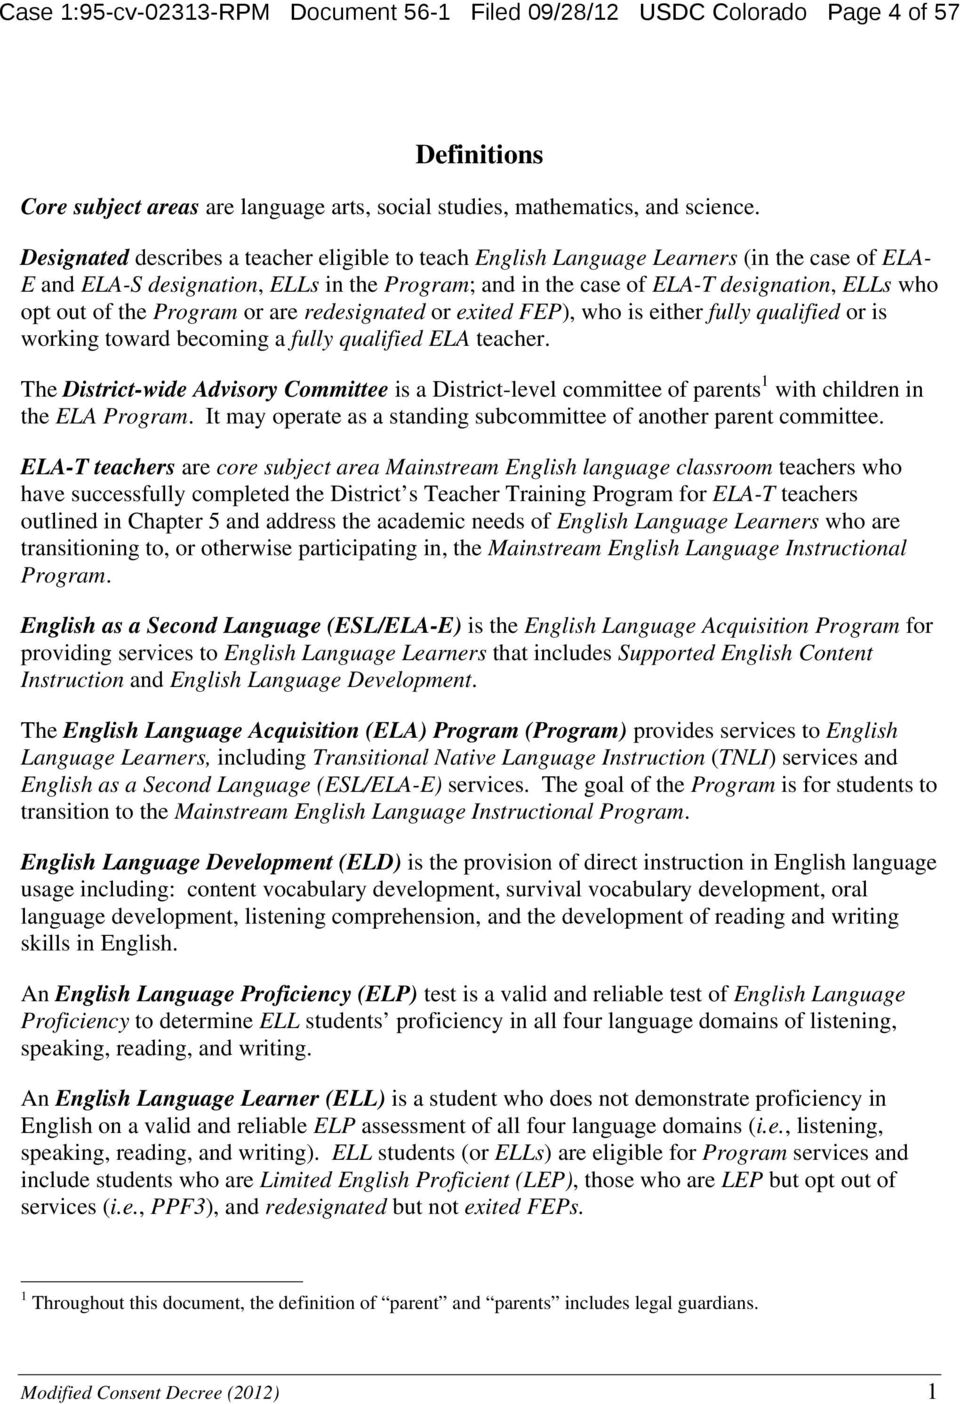 the Program or are redesignated or exited FEP), who is either fully qualified or is working toward becoming a fully qualified ELA teacher.